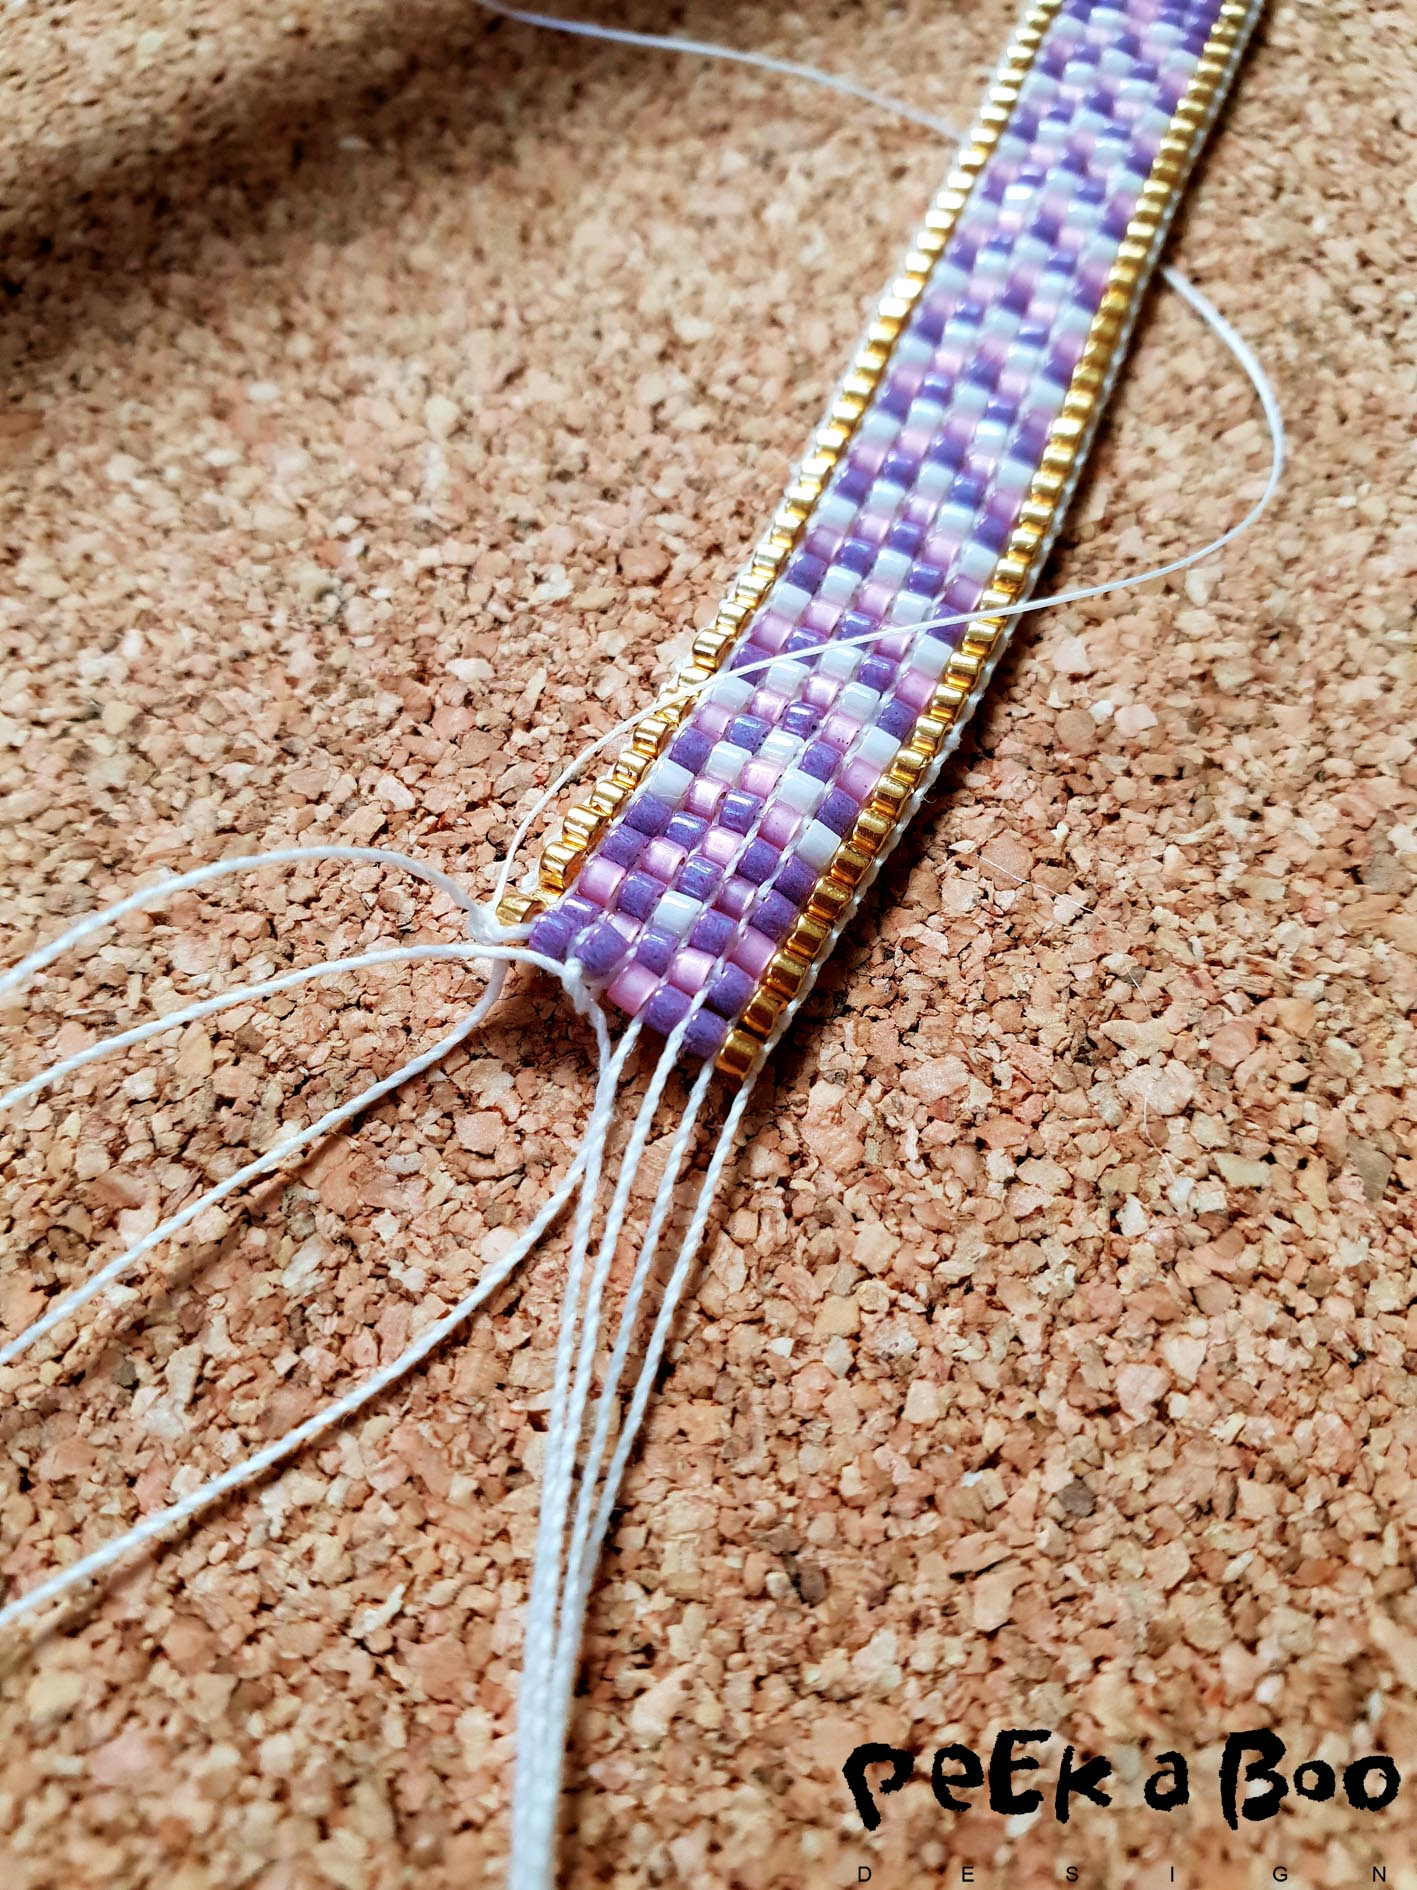 Now you also loosen the other end of the threads from the crossbar. And now tie the threads of the loom together two and two. so you close the weaving.